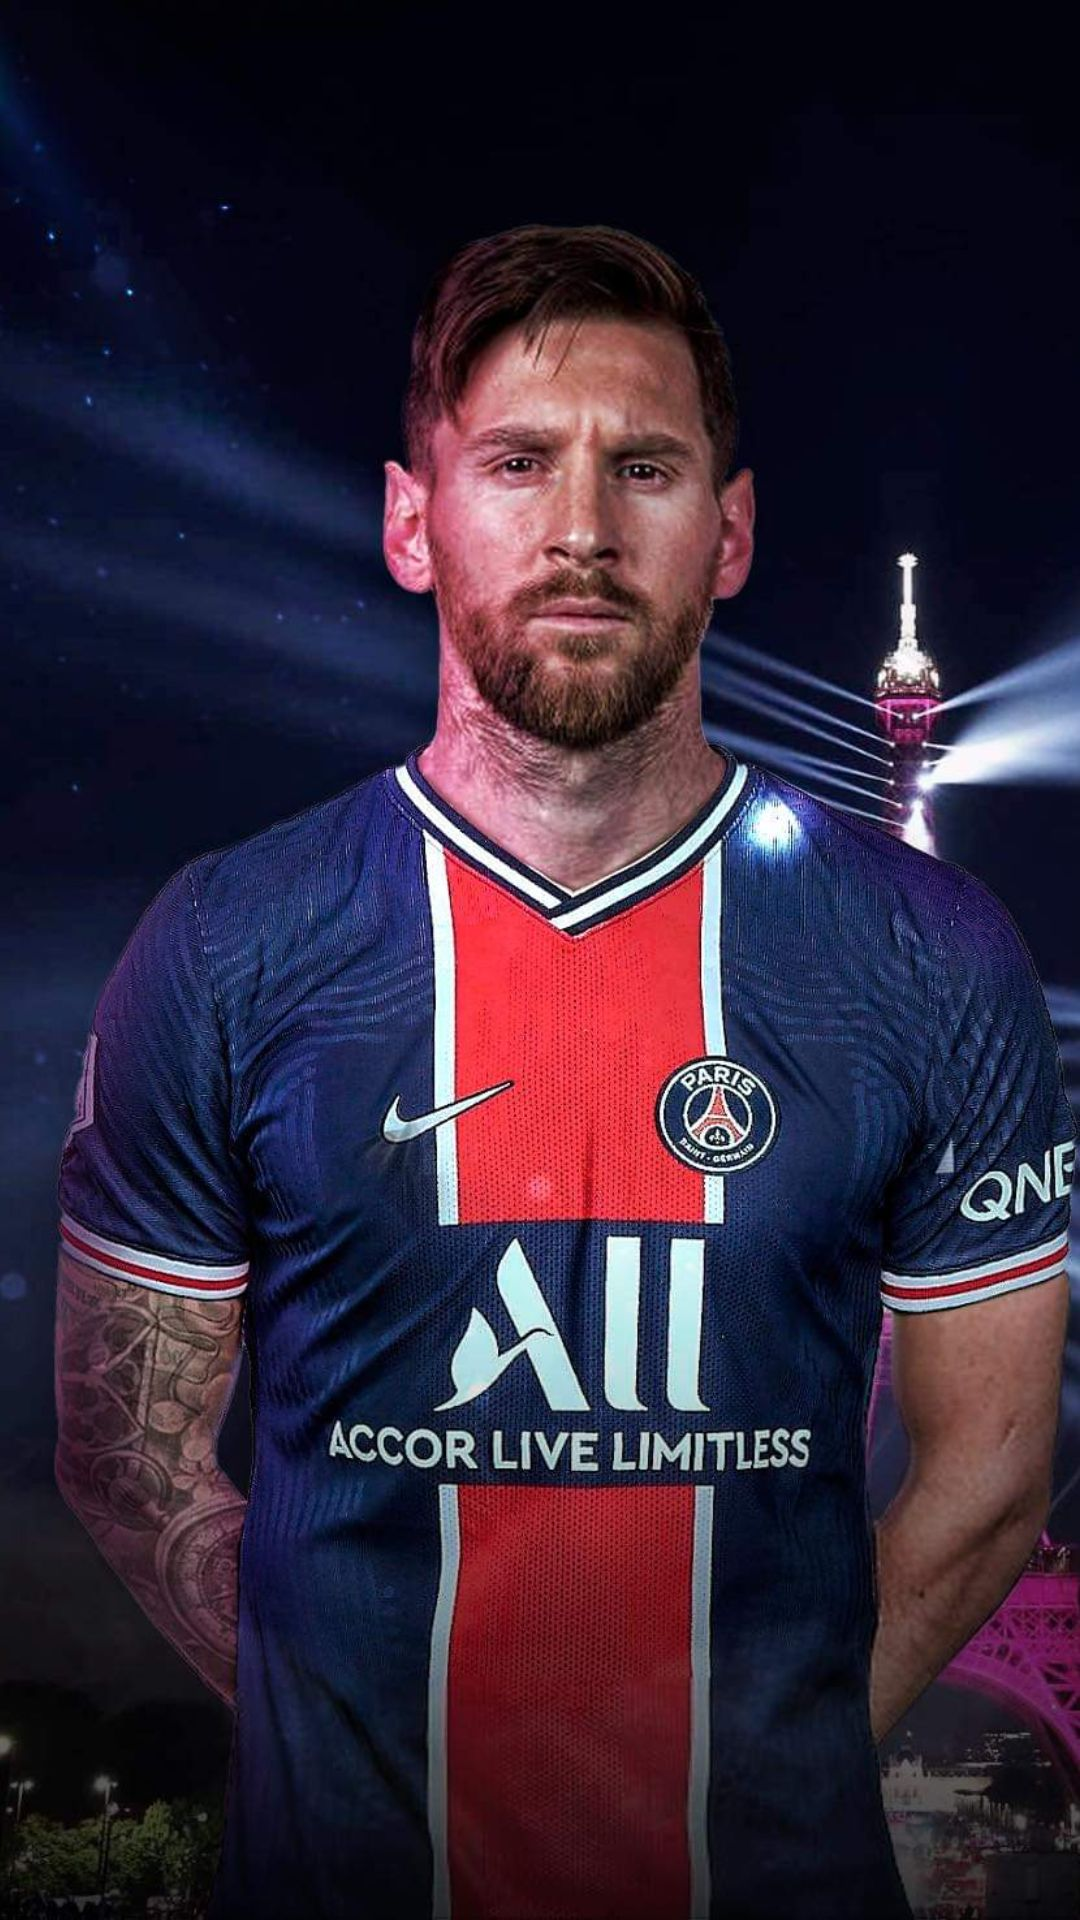 Lionel Messi PSG Wallpapers   Top Best Messi PSG Pictures Photos 1080x1920